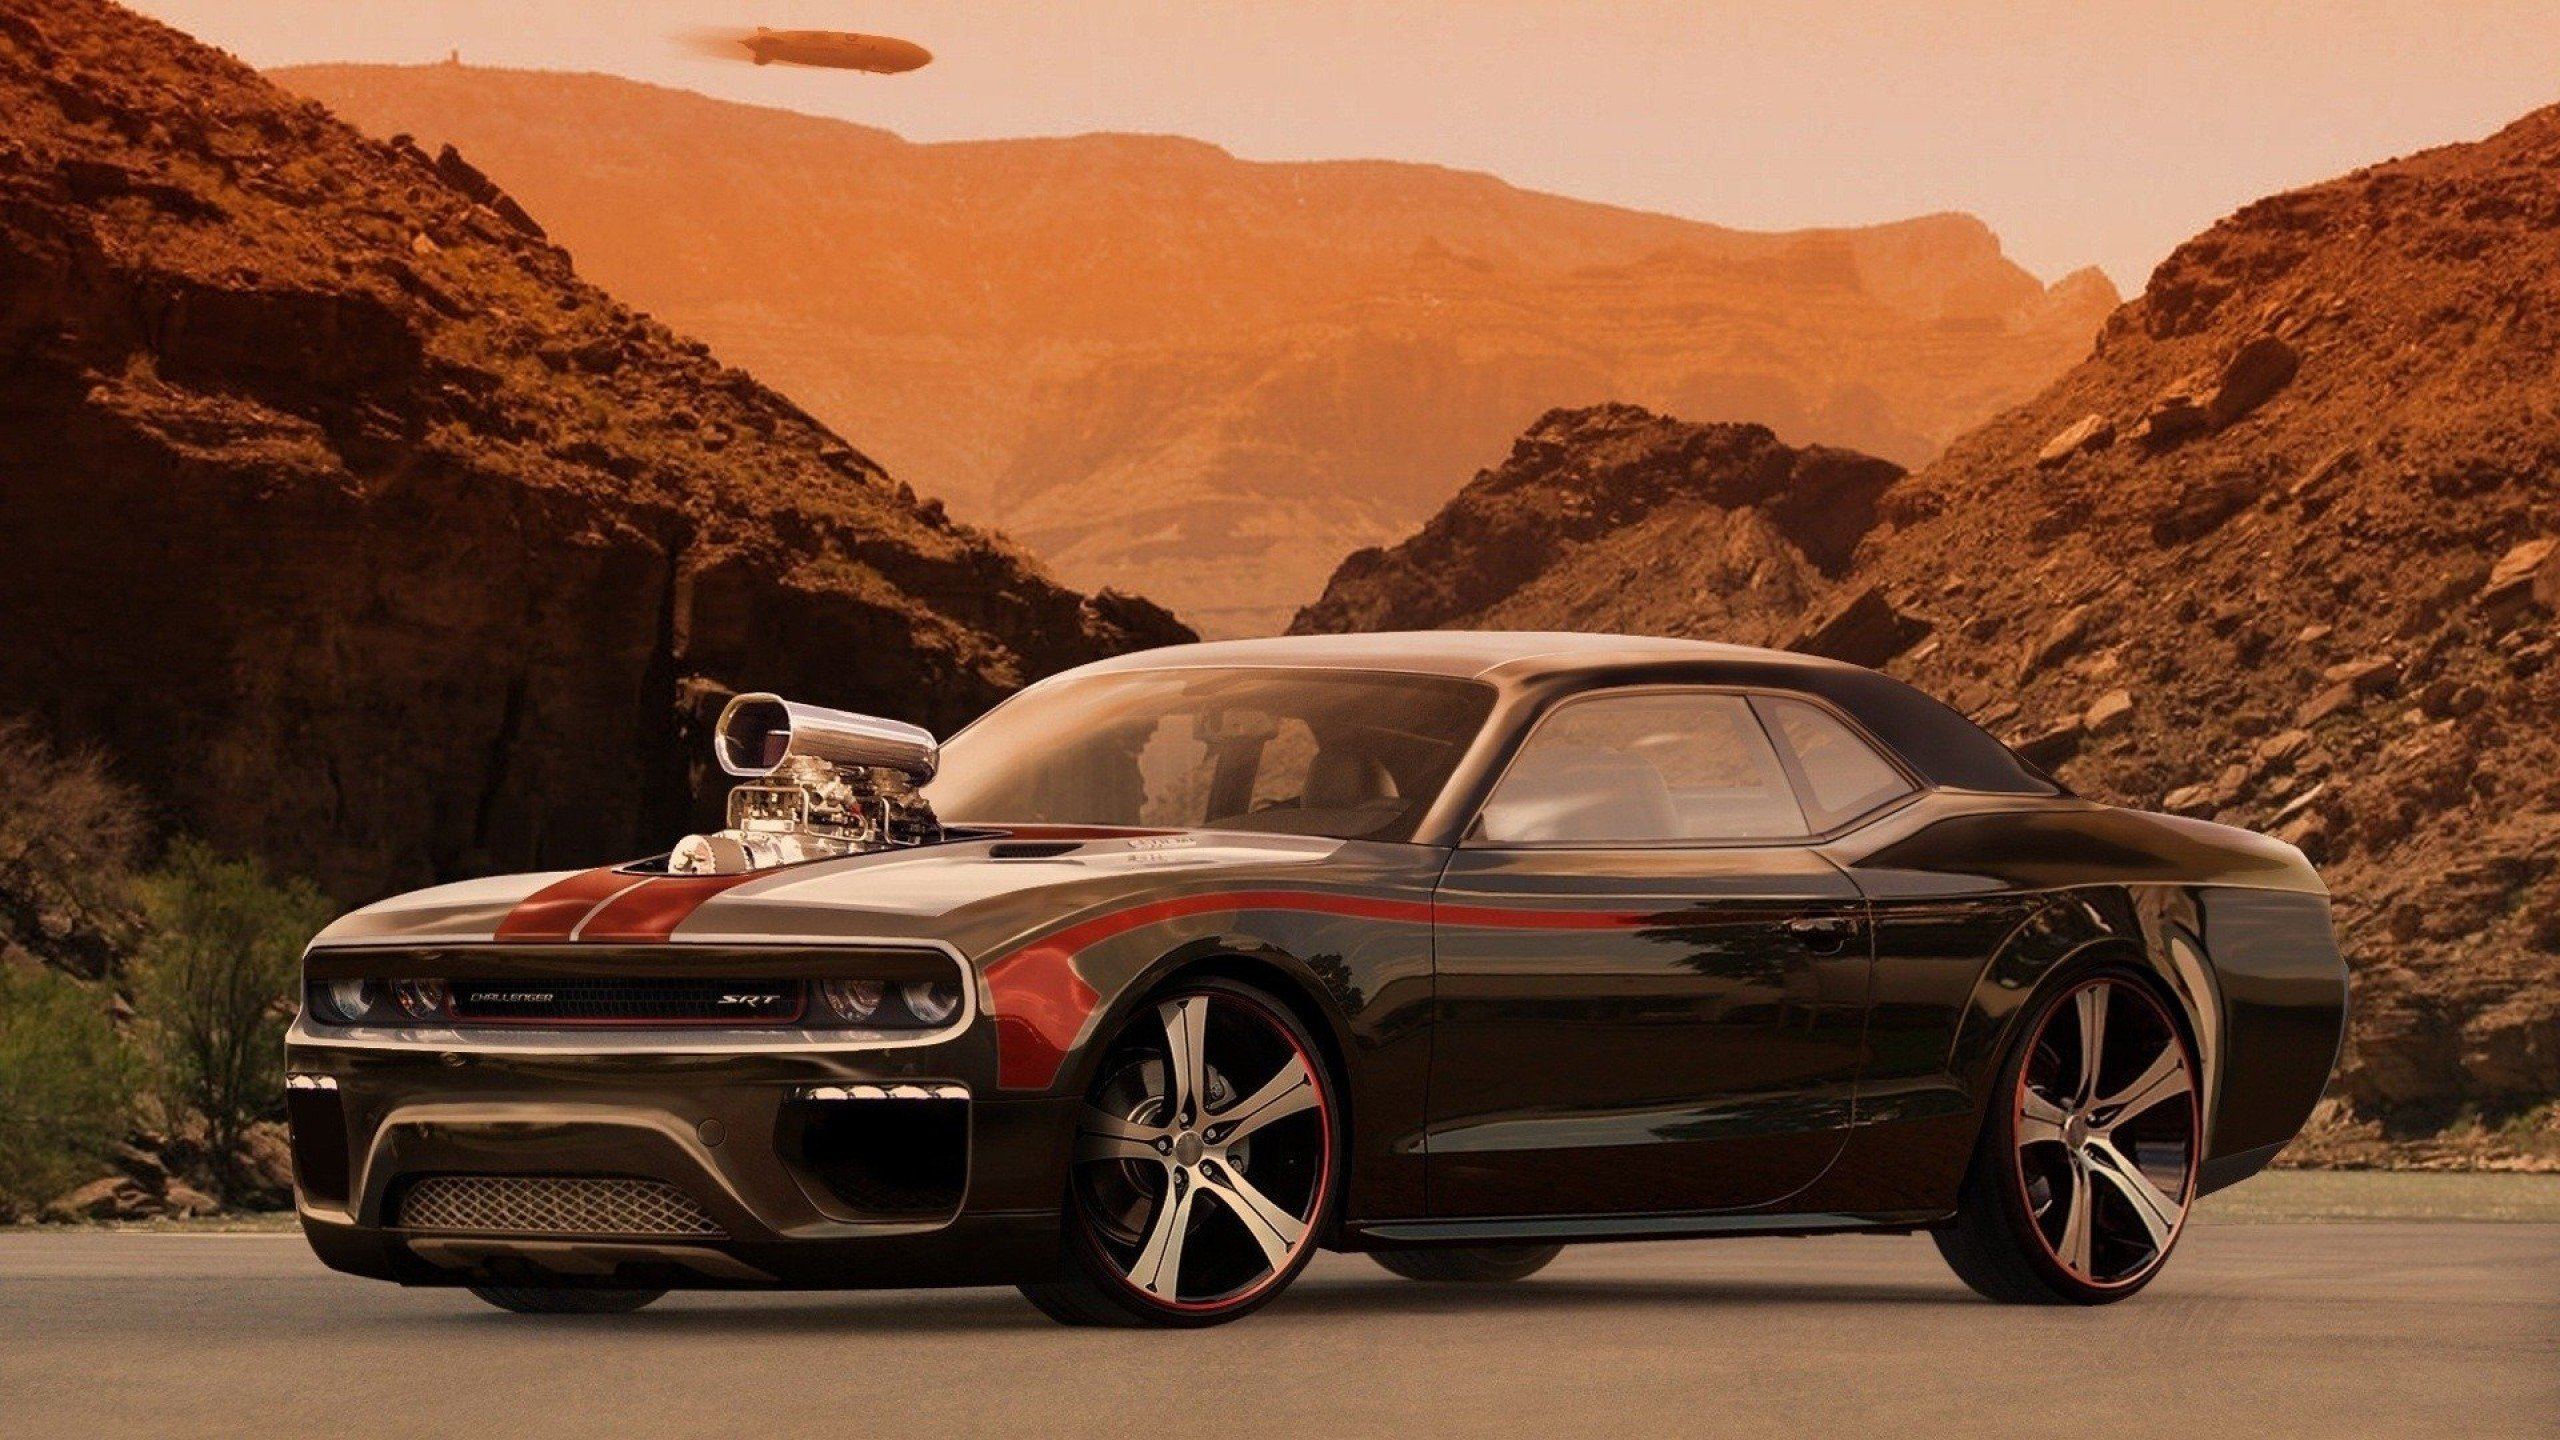 dodge challenger wallpaper hd 2560x1440 231697